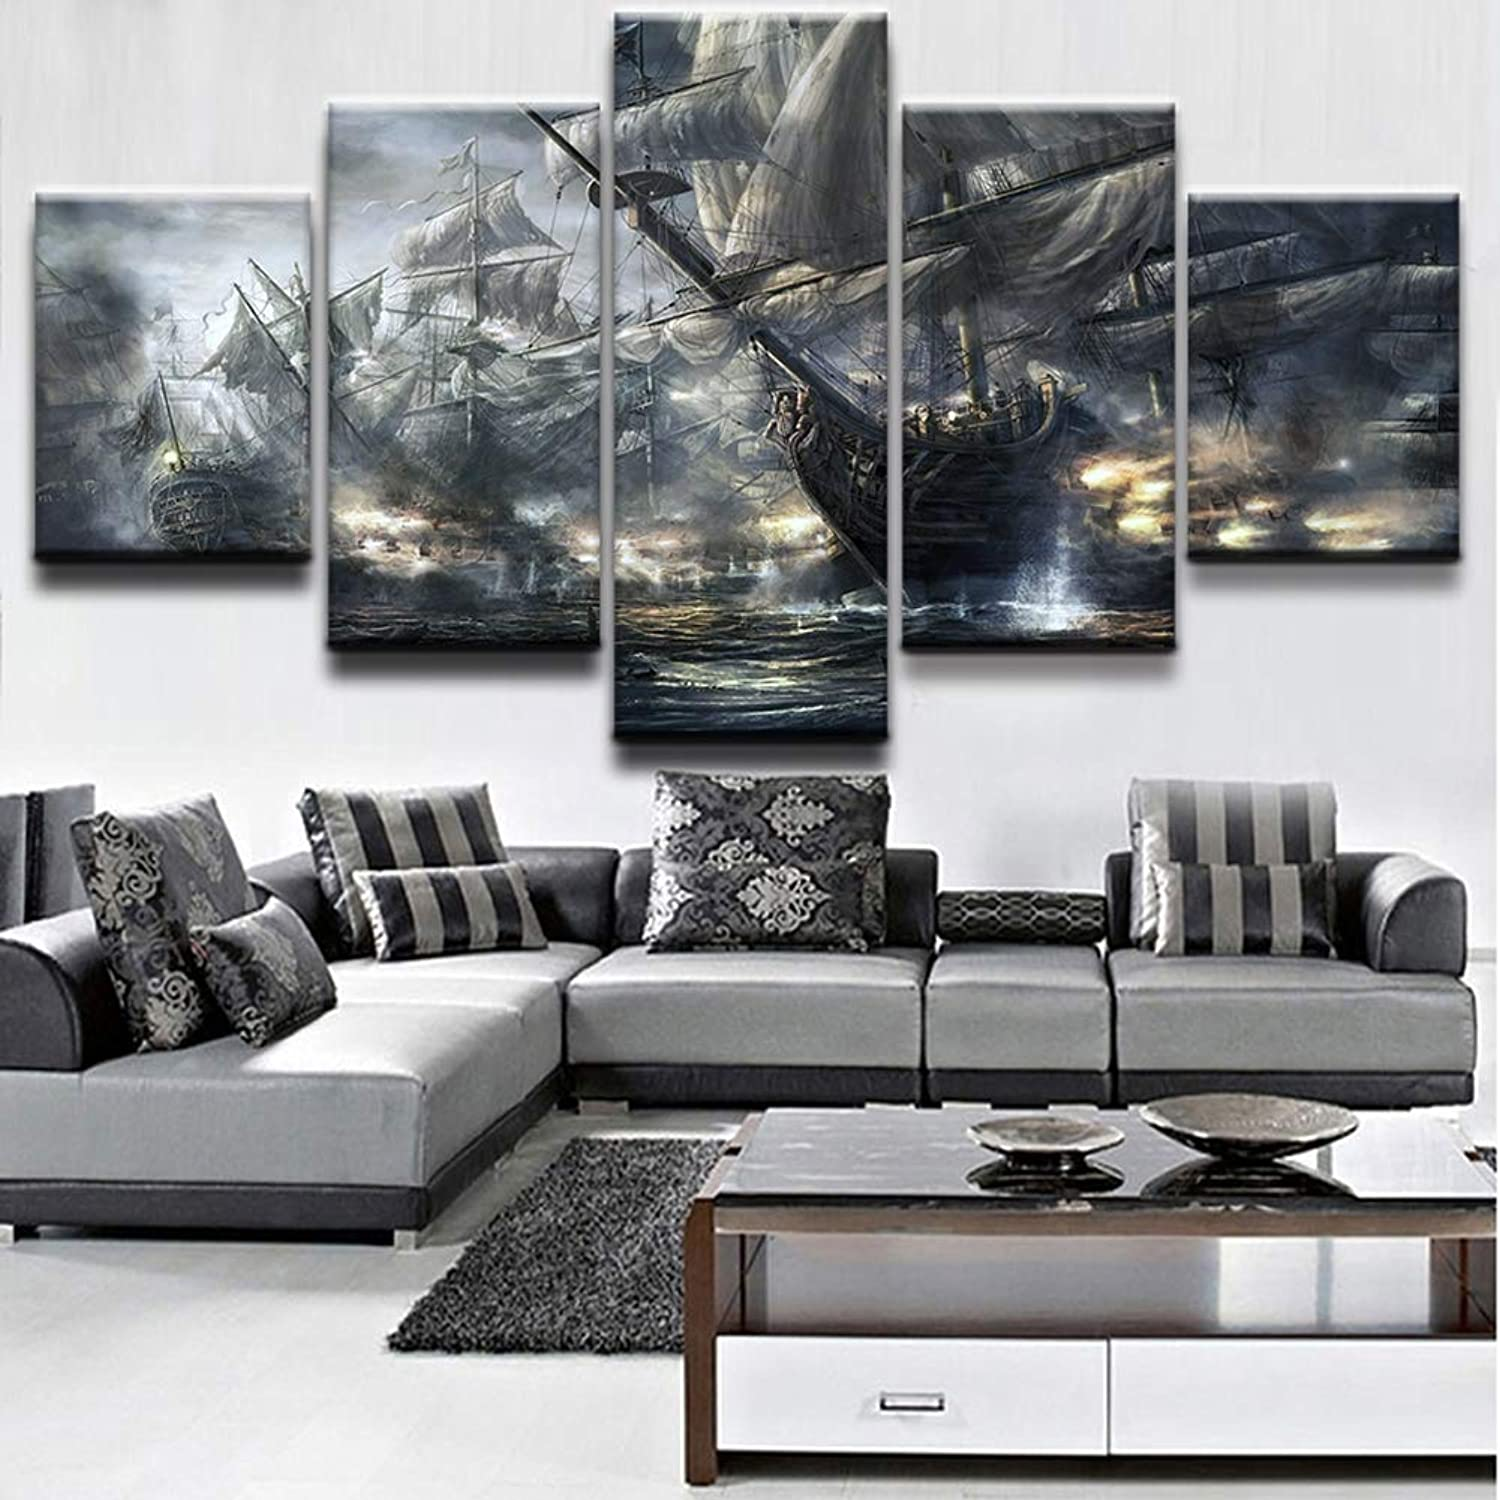 Canvas Wall Art Picture 5 Panel Ships On The Sea Modern Paintings Home Decoration Living Room Canvas Print Modern Painting